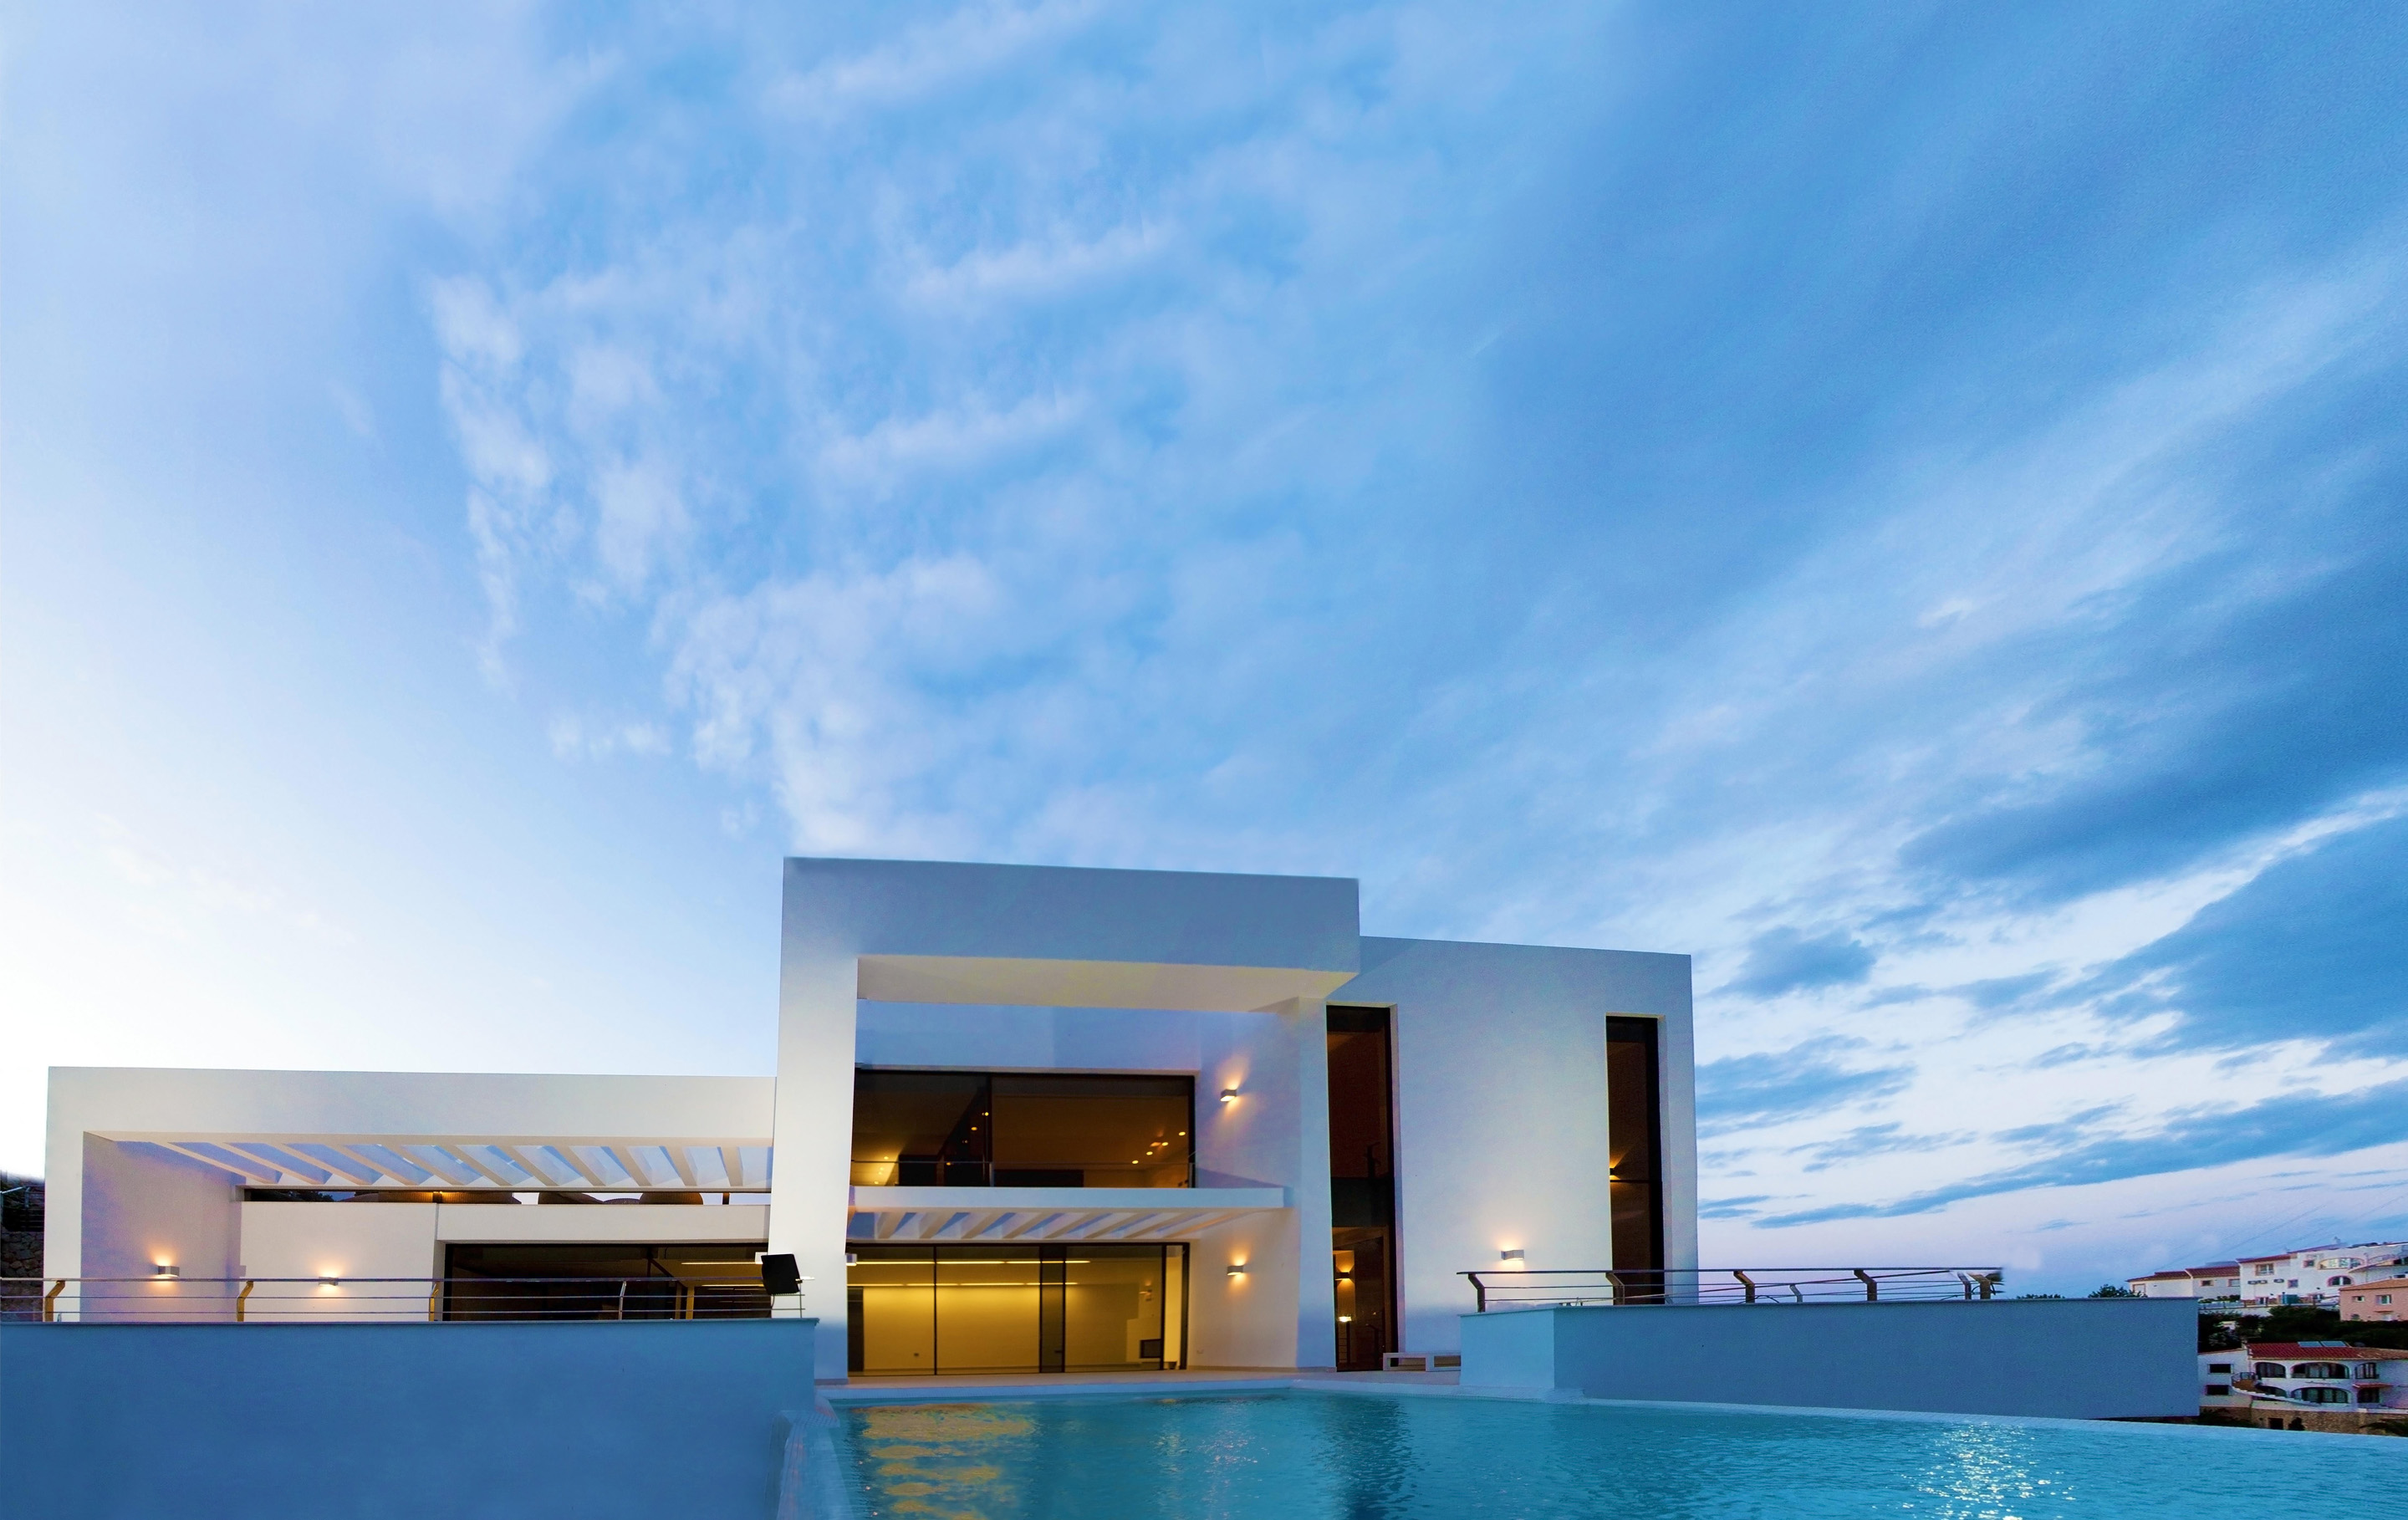 main facade and swimming pool of the Modern Mansions Superlatives -La Perla del Mediterraneo by Carlos Gilardi